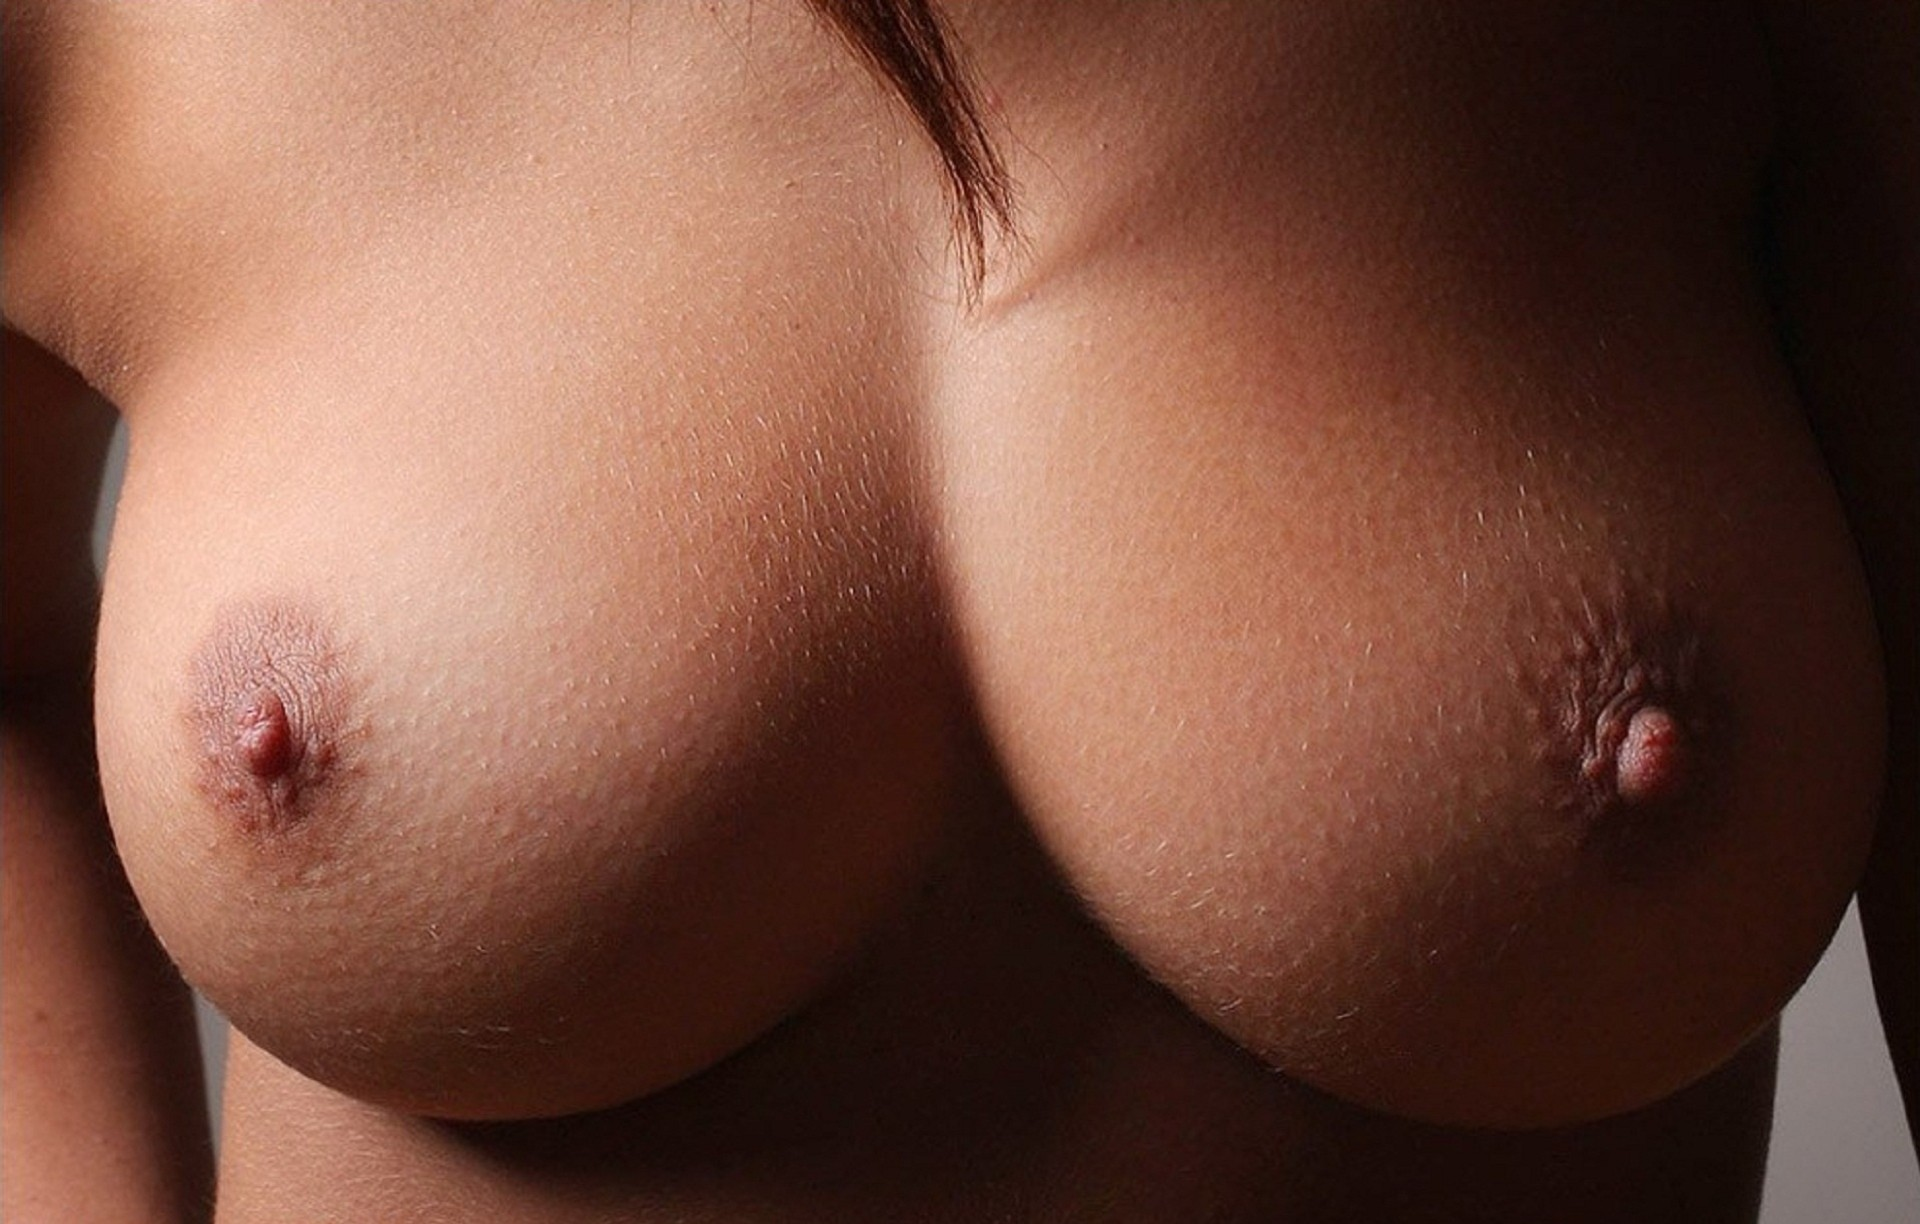 watching-nude-breast-pic